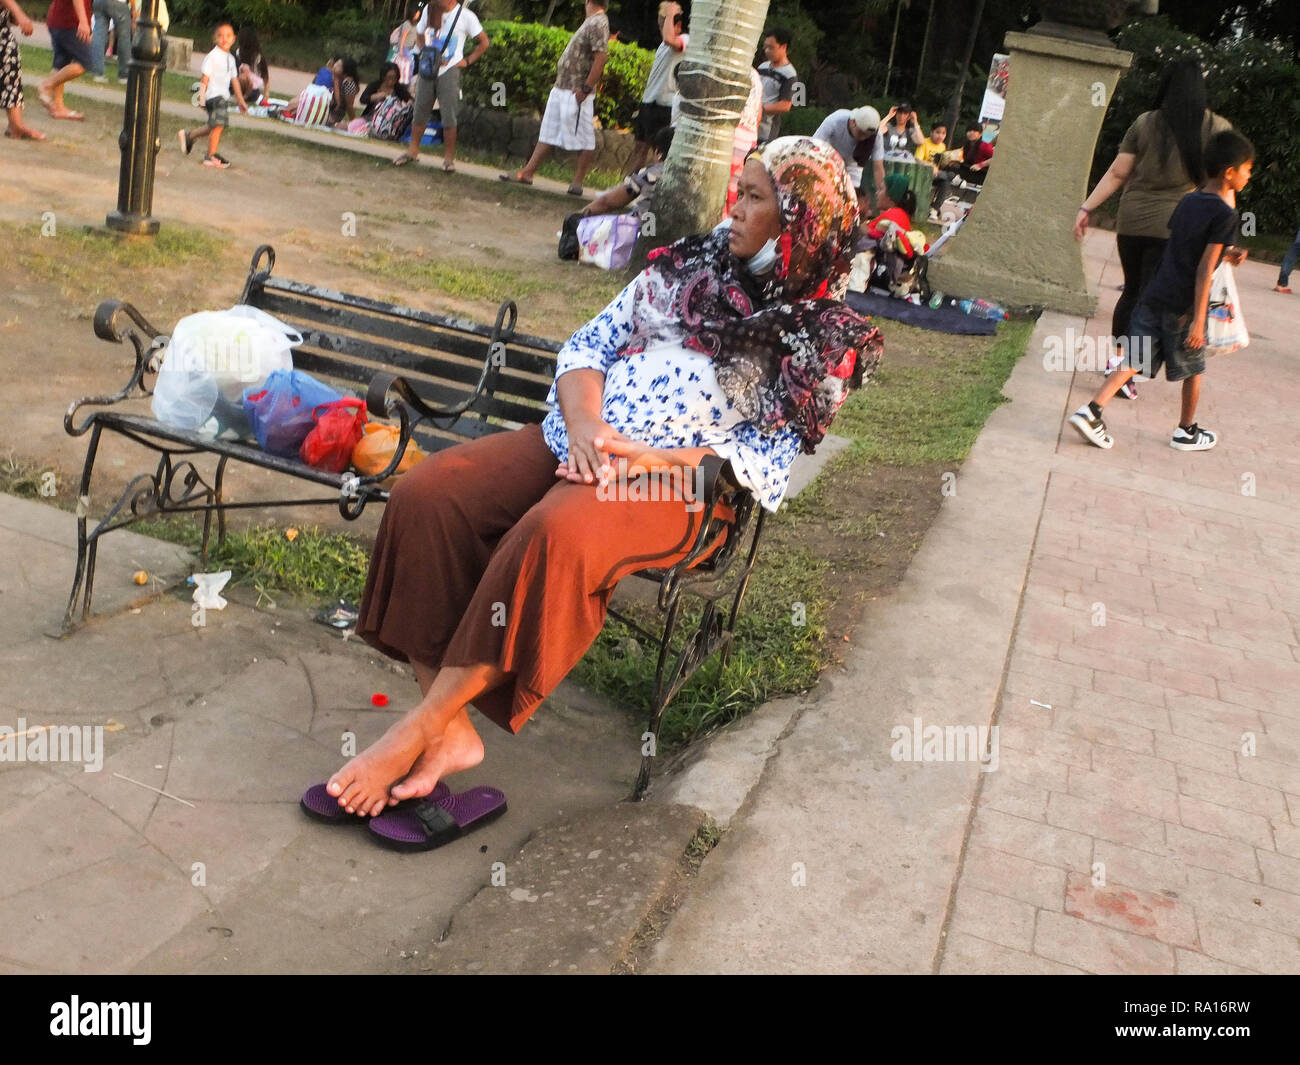 Manila, Philippines. 18th Mar, 2012. A muslim woman seen resting at the park's bench during the holidays.Yuletide season holidays come as vacation leaves for Filipinos. They spend much time with their families to enjoy and have special bonding with loved ones. Credit: Josefiel Rivera/SOPA Images/ZUMA Wire/Alamy Live News - Stock Image